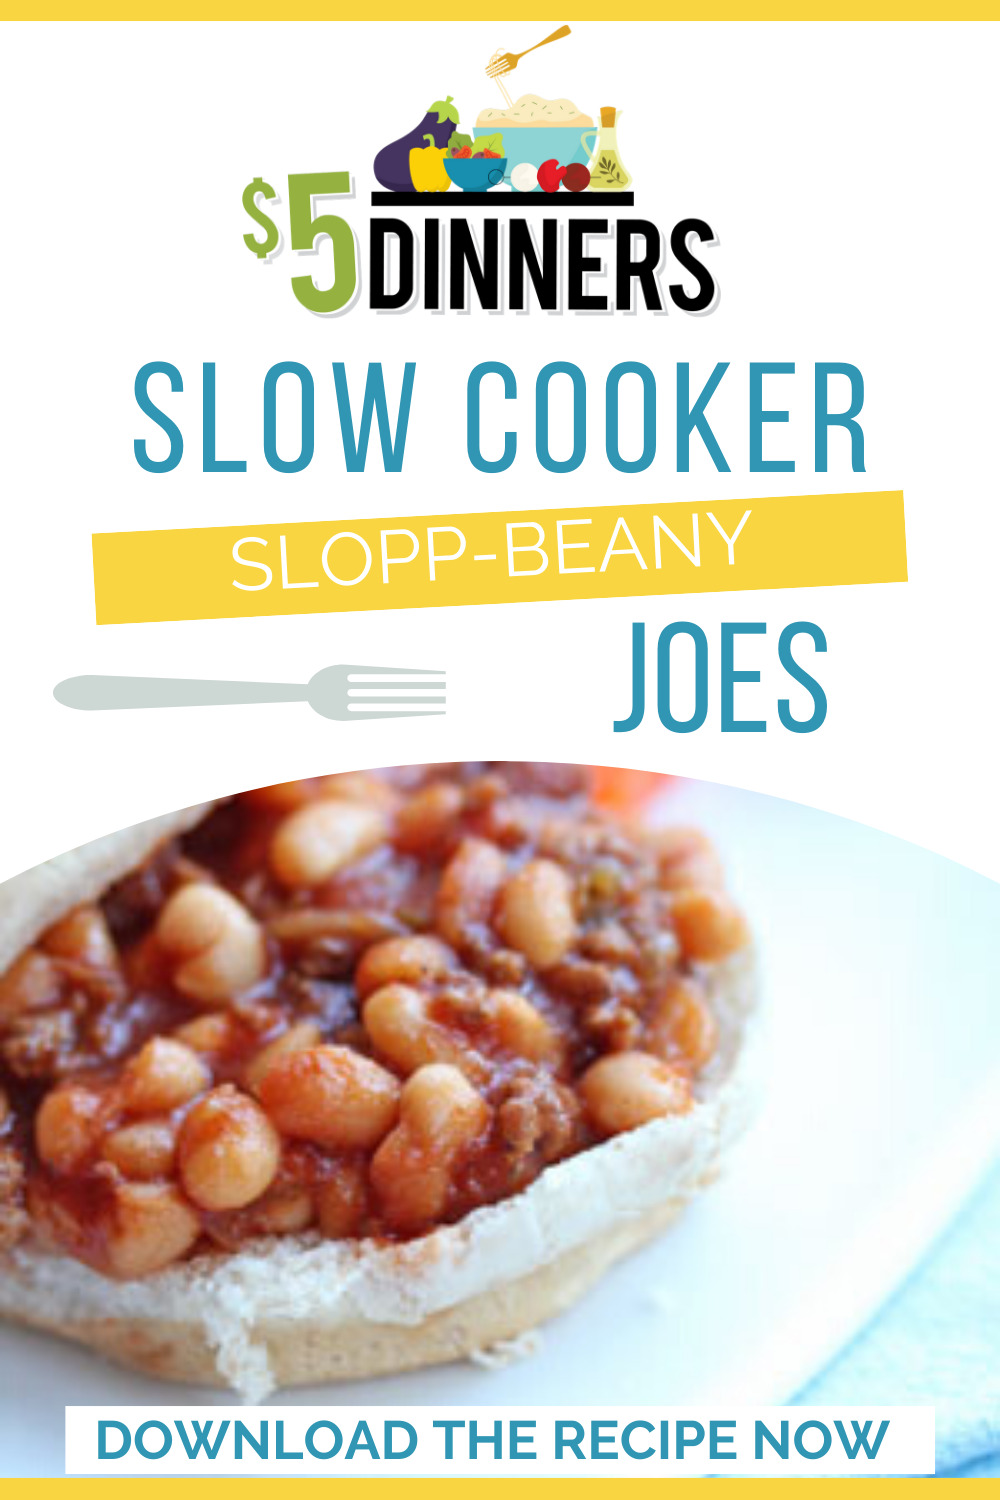 slow cooker slopp-beany joes